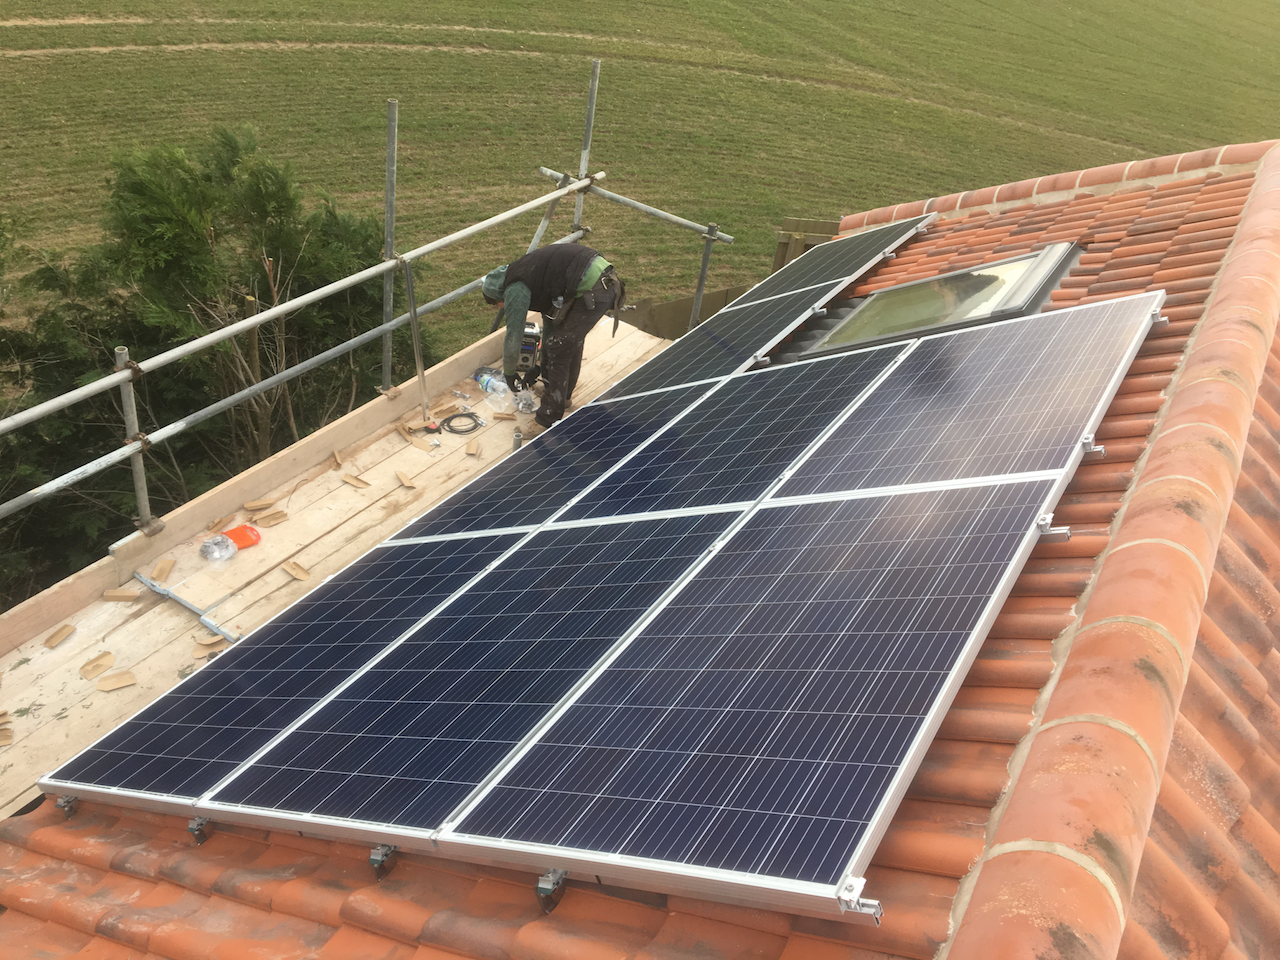 https://www.bluedotroofing.uk/wp-content/uploads/2018/02/Solar-PV-Installtion-South-Clifton-Lincs-6.png